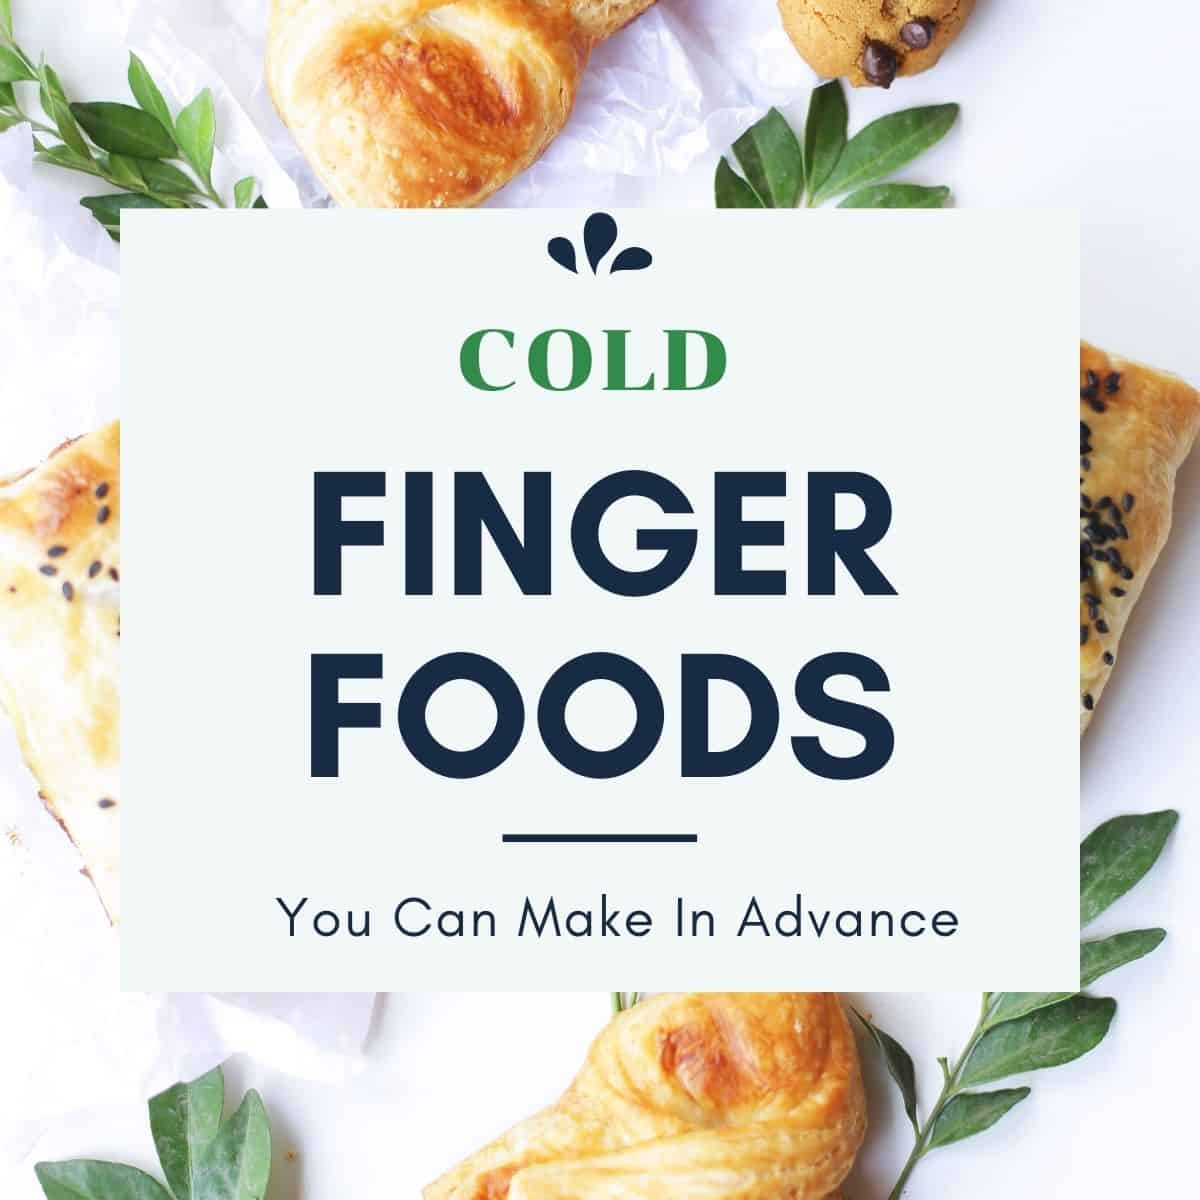 """cold finger foods on a table with text overlay """"cold finger foods you can make in advance"""""""